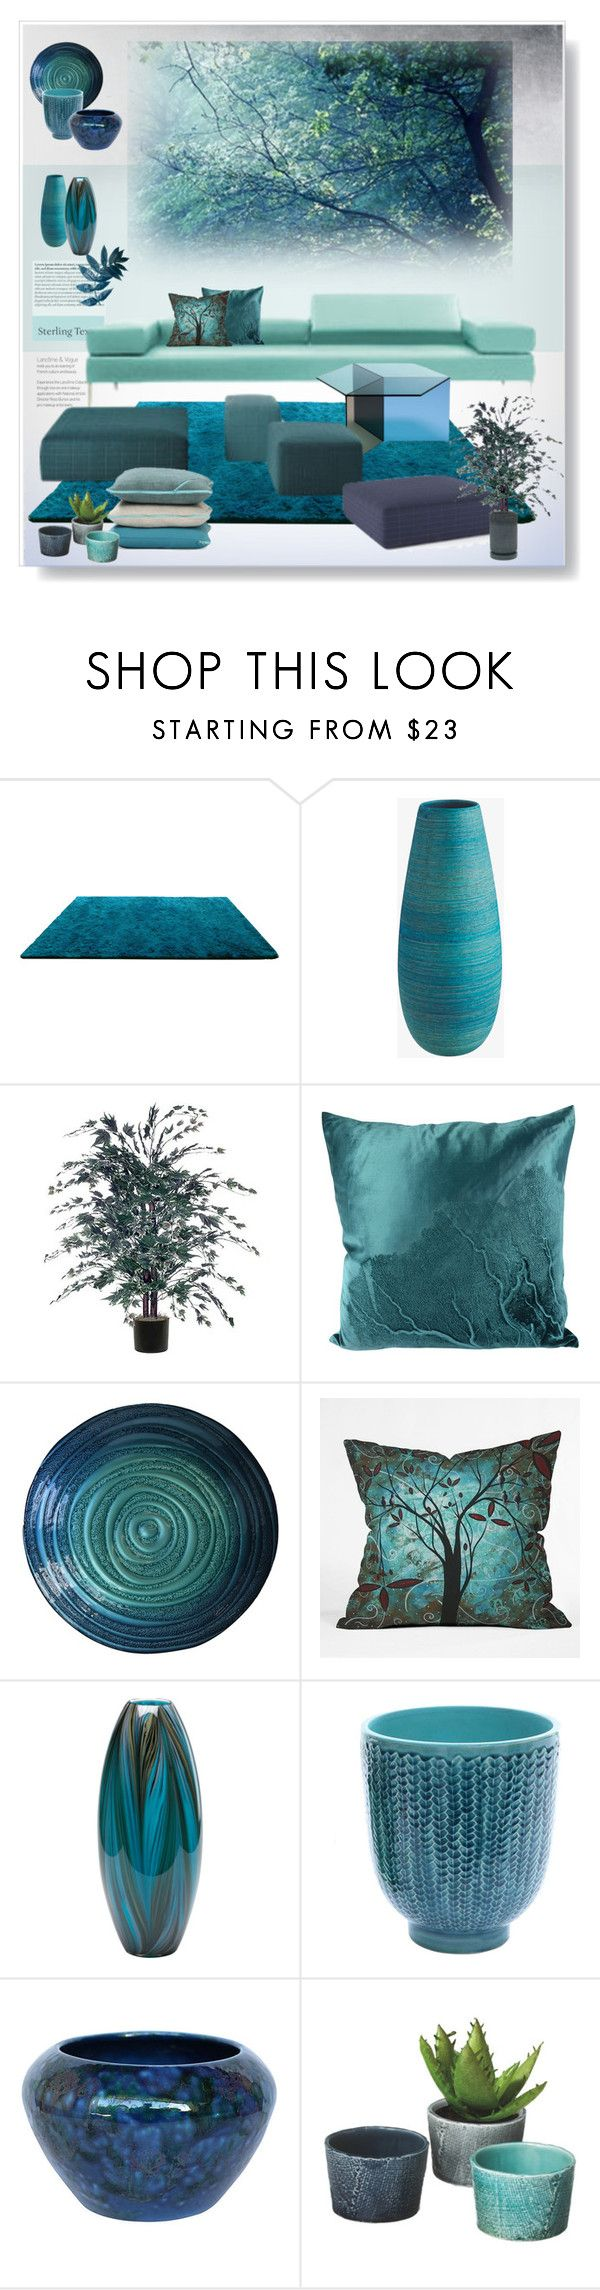 71 best soft decoration design images on pinterest | material